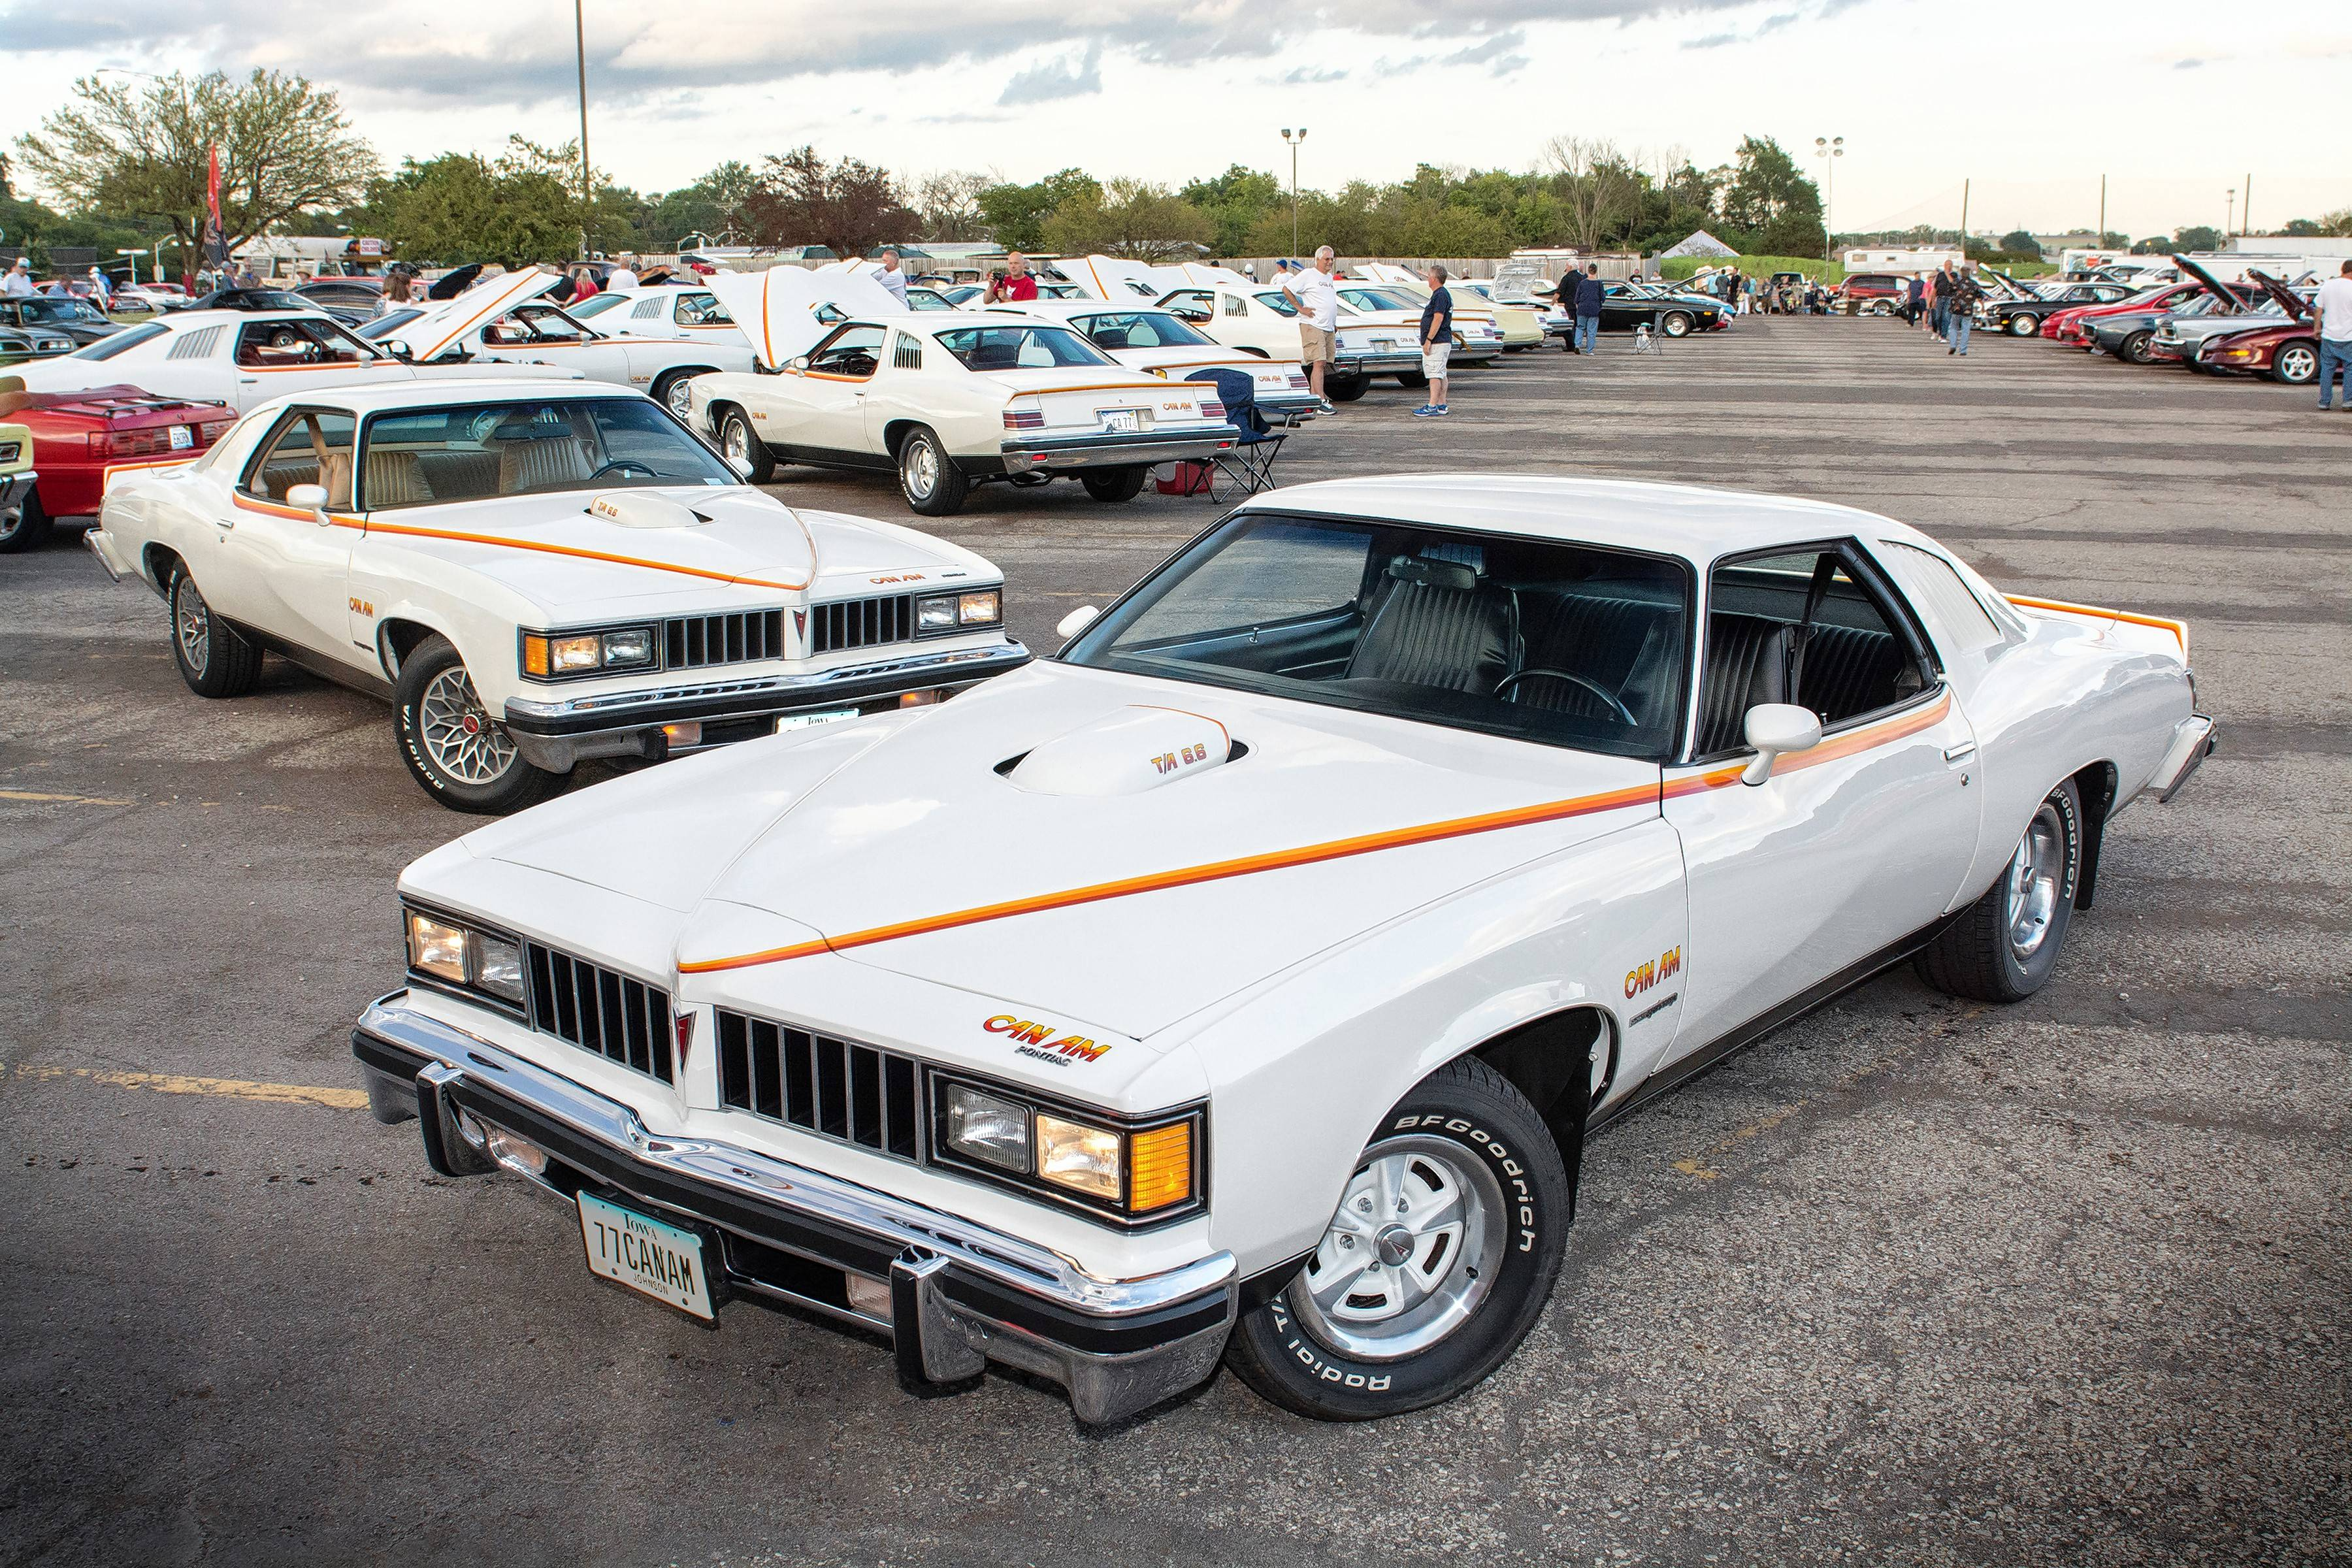 A whole lot of attraction going on at Indian Uprising Pontiac show